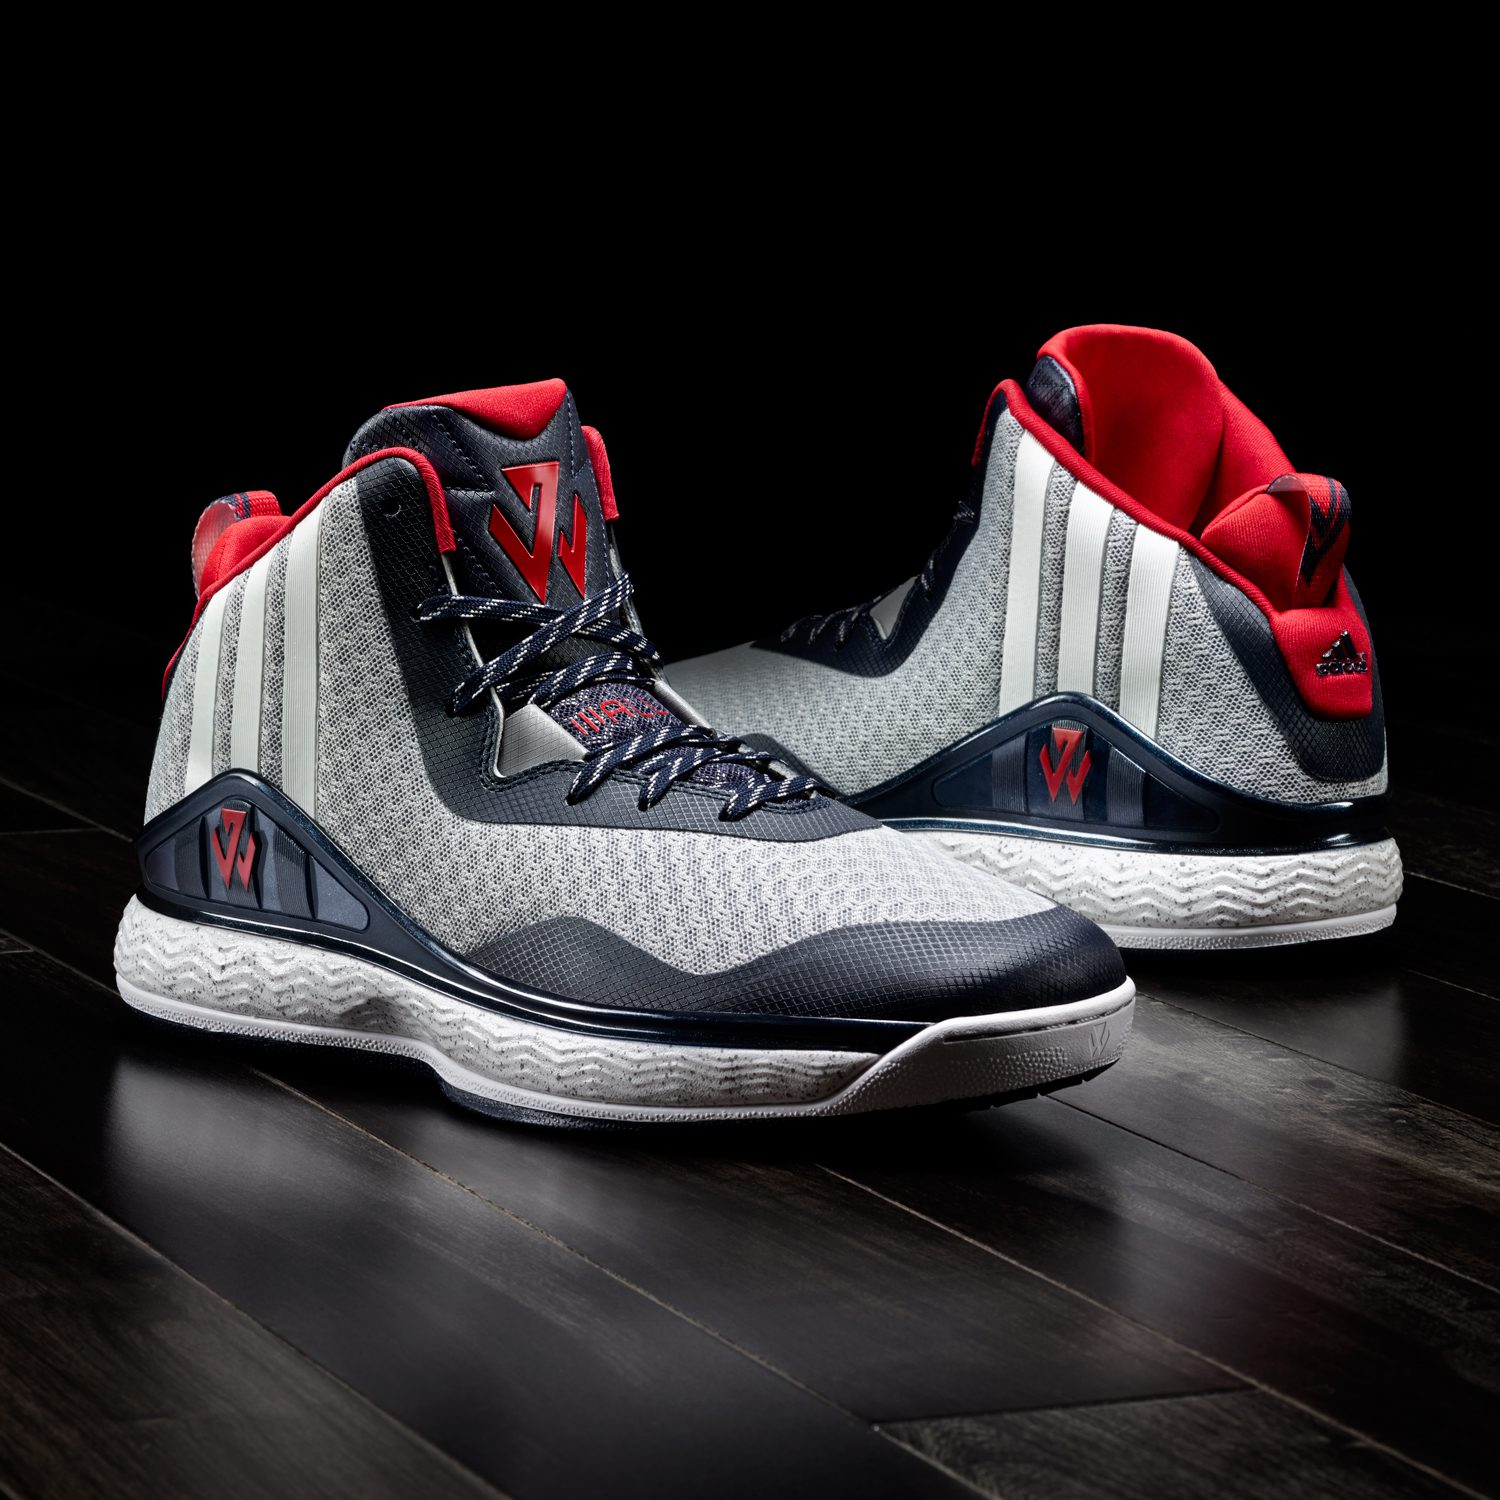 buy online 3f9e3 2521f BMF Hoops Debut  adidas J Wall 1 Collection